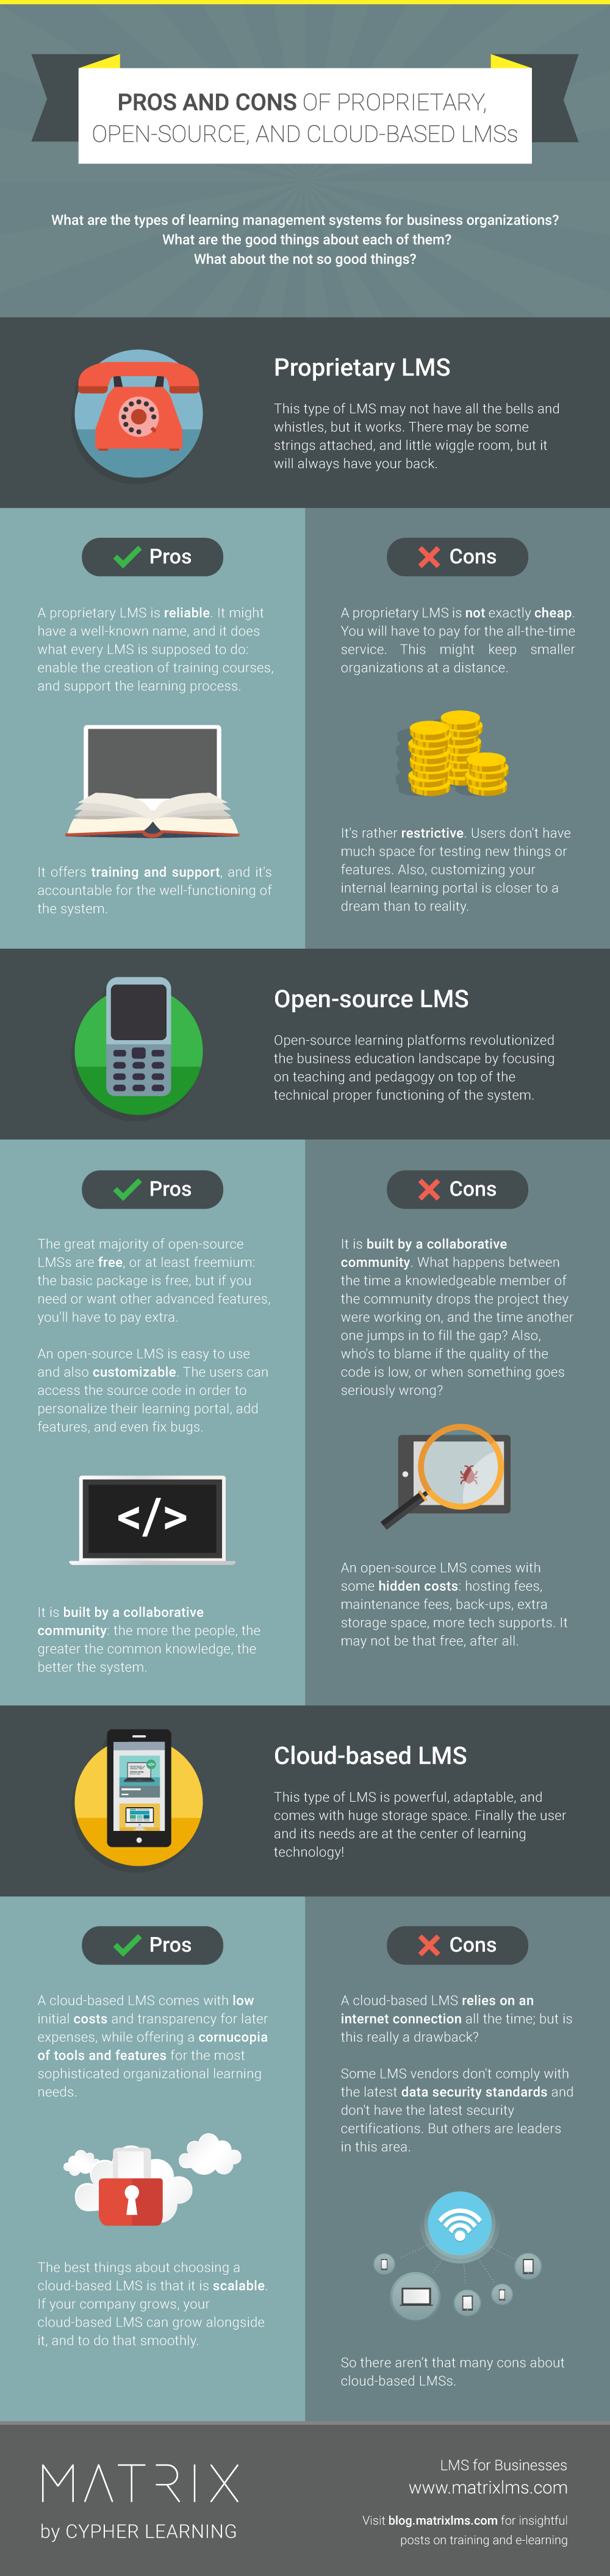 Pros and Cons of Proprietary, Open-Source, and Cloud-Based LMSs